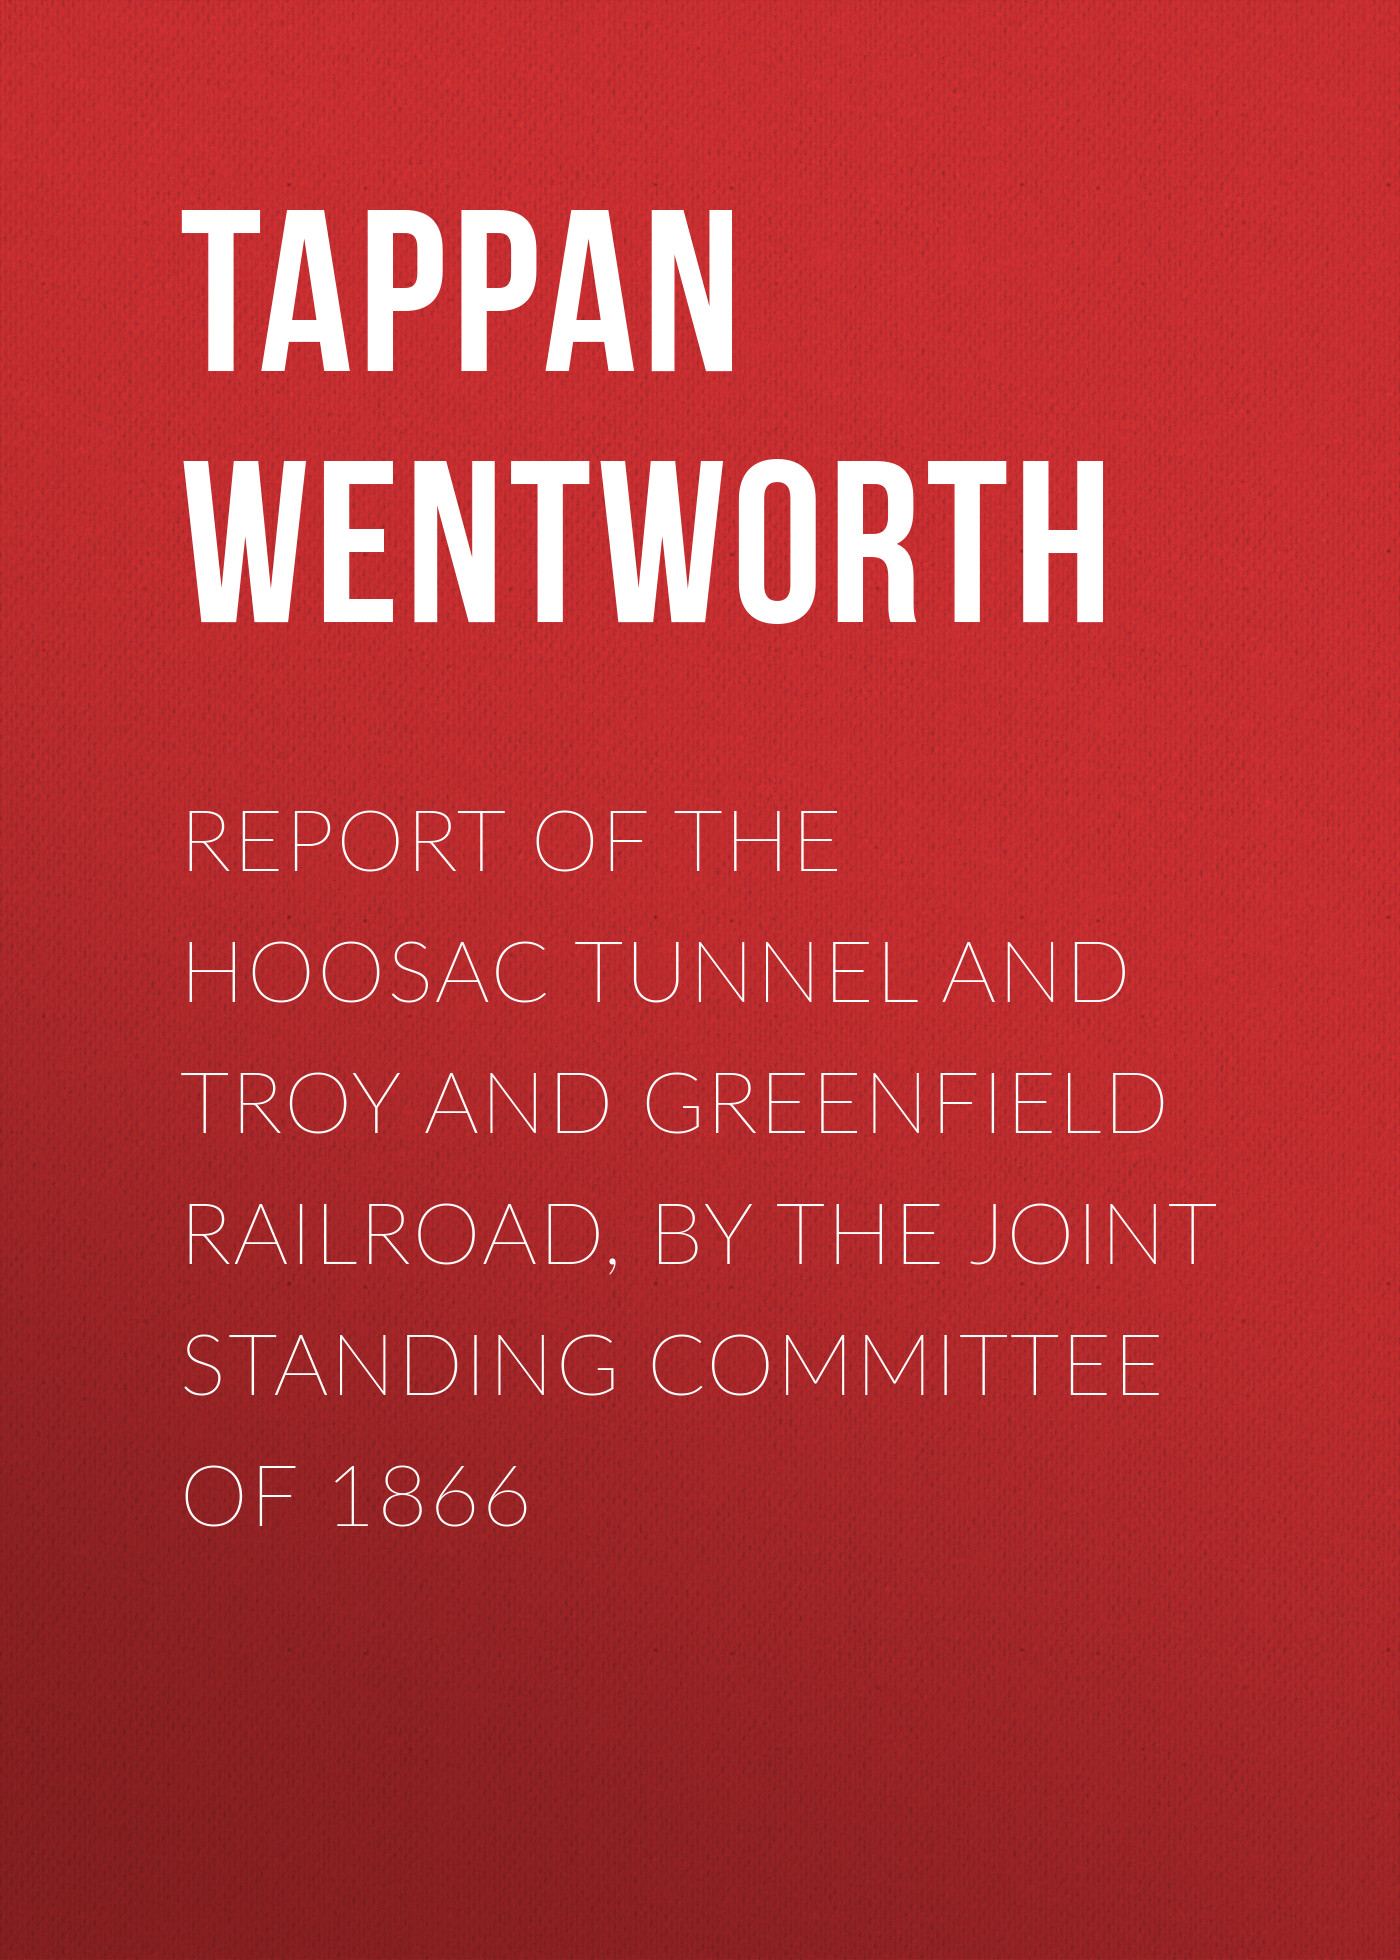 Report of the Hoosac Tunnel and Troy and Greenfield Railroad, by the Joint Standing Committee of 1866